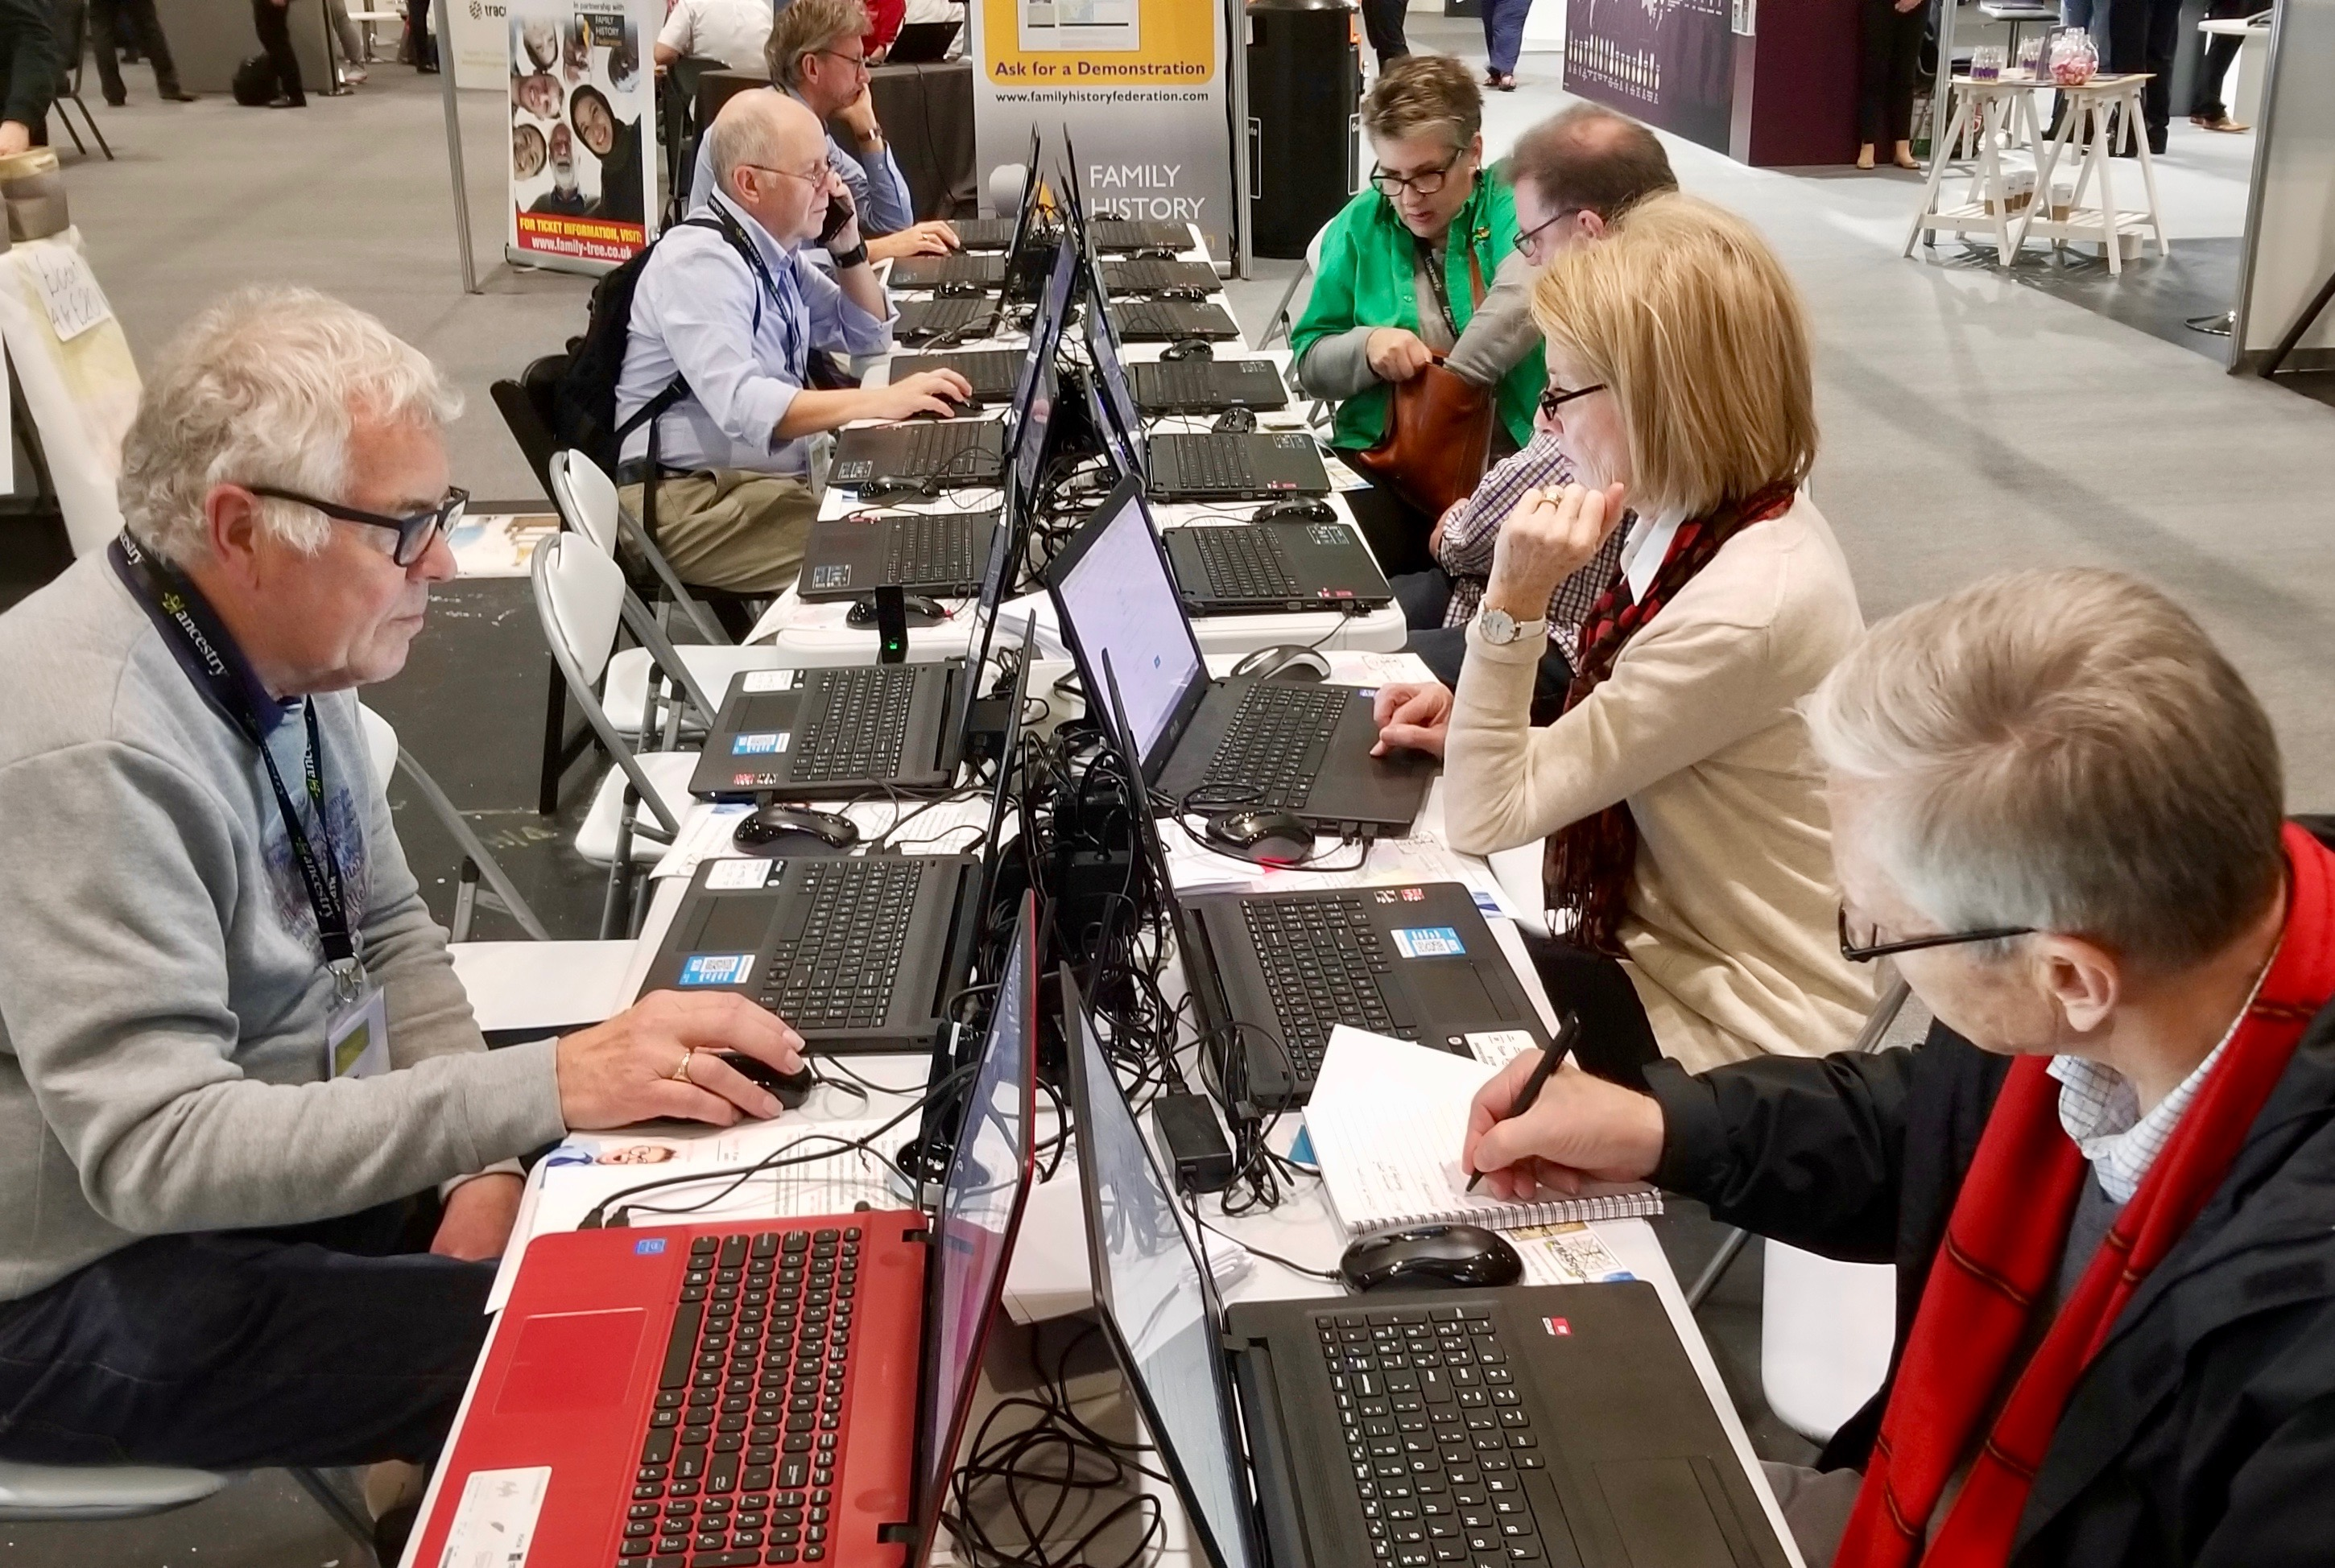 RootsTech London attendees work at a bank of laptops in the exhibition hall of the London ExCel on Friday, Oct. 25, 2019.